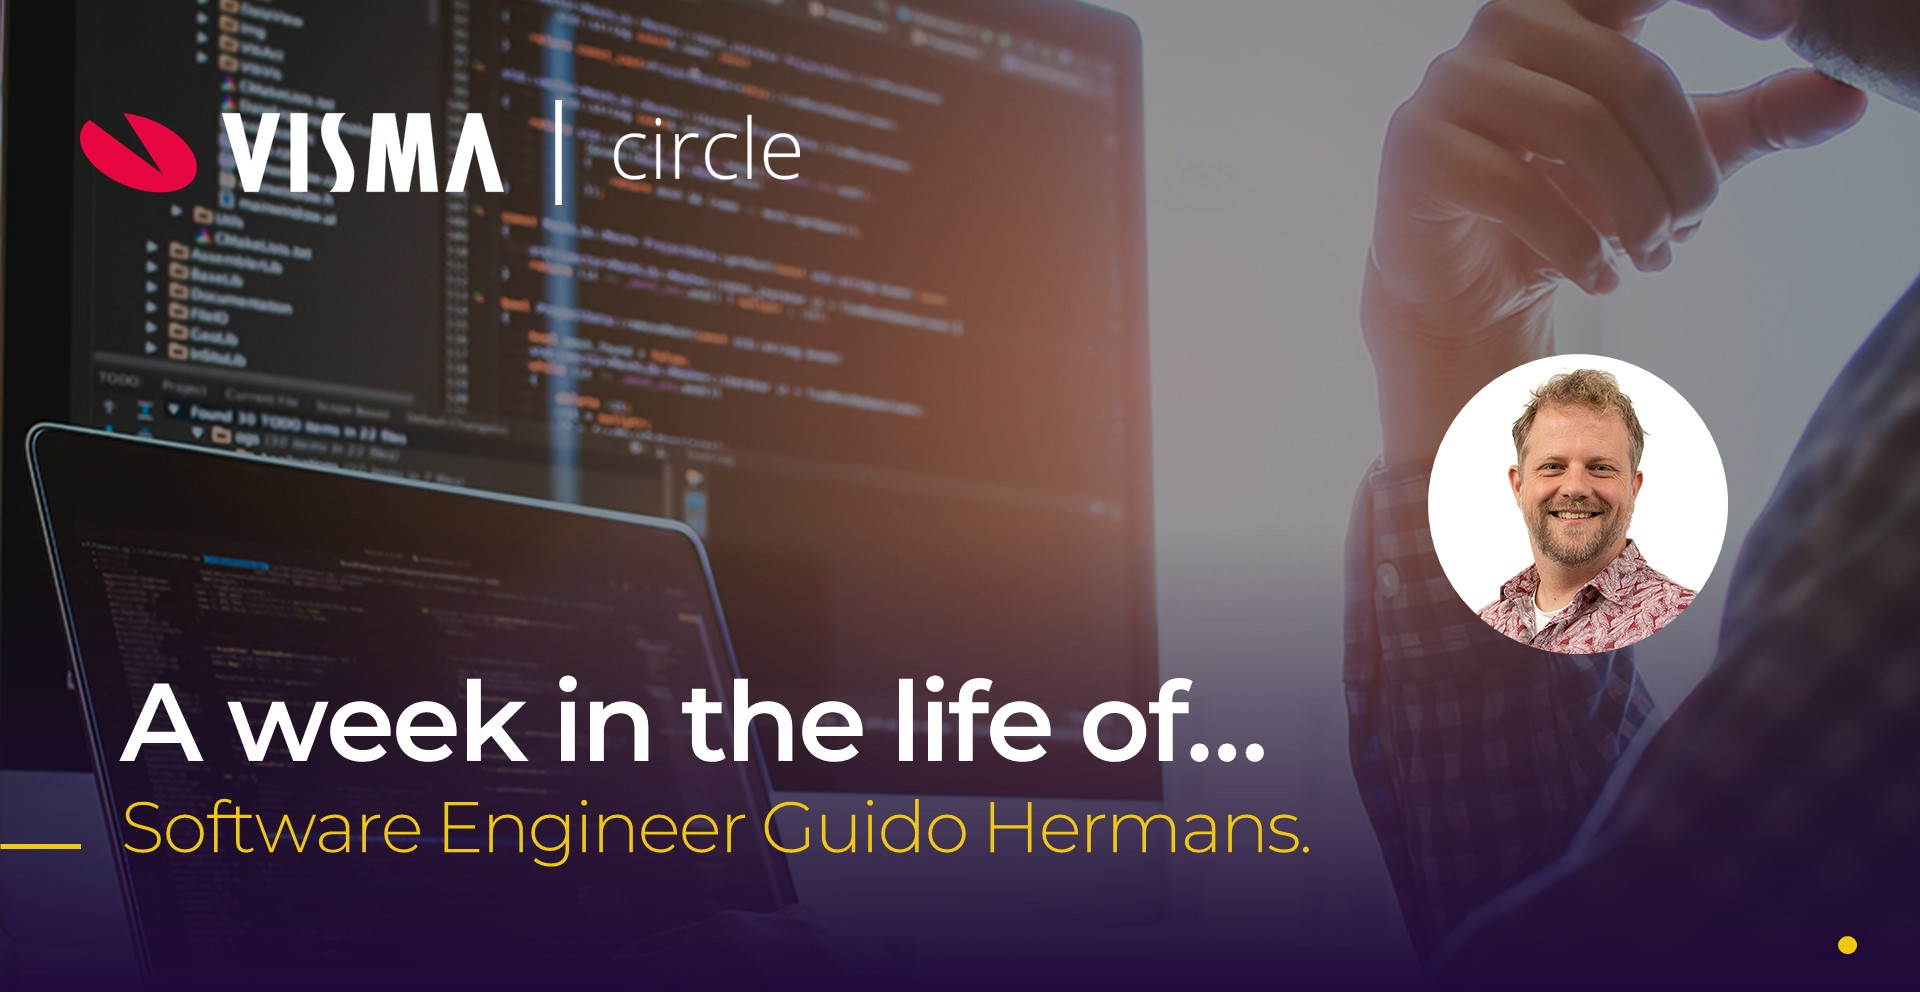 A week in the life of Software Engineer Guido